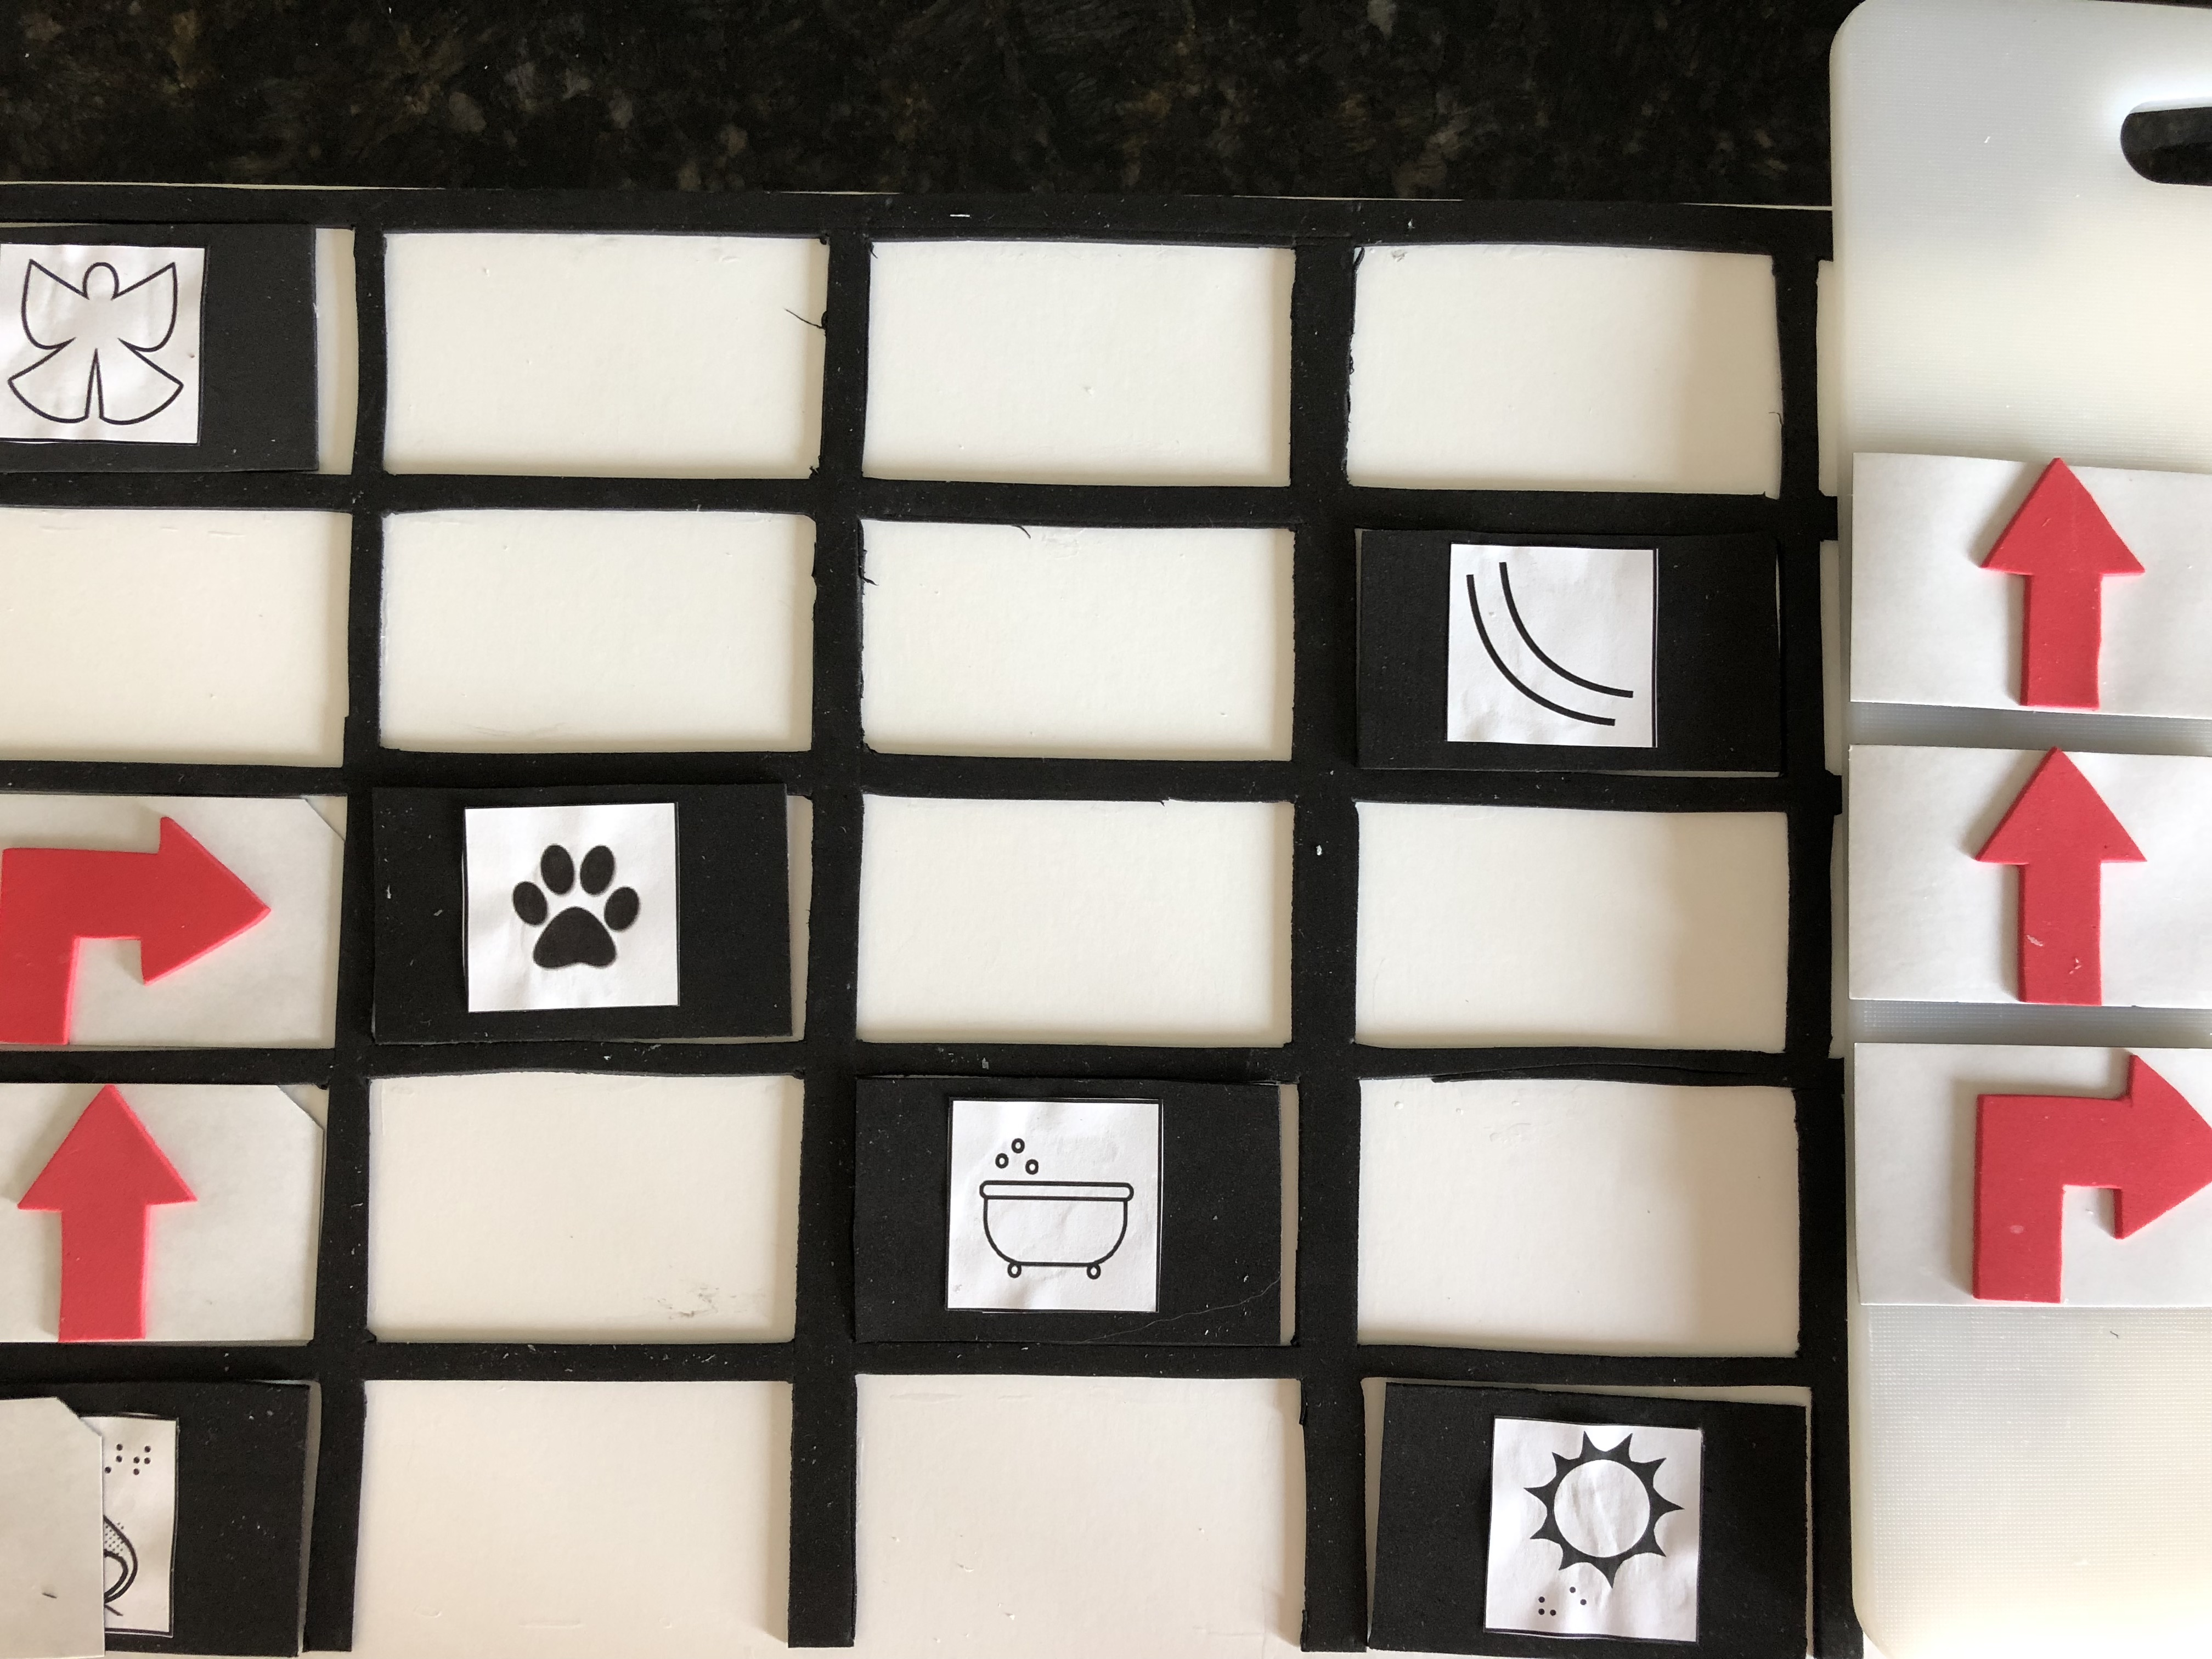 Photo of white foam board, with black tactile grid and Snowy Day cards. A move forward card shares a square with Peter, and additional move forward and turn right cards are placed in empty squares in the path to Tracks.